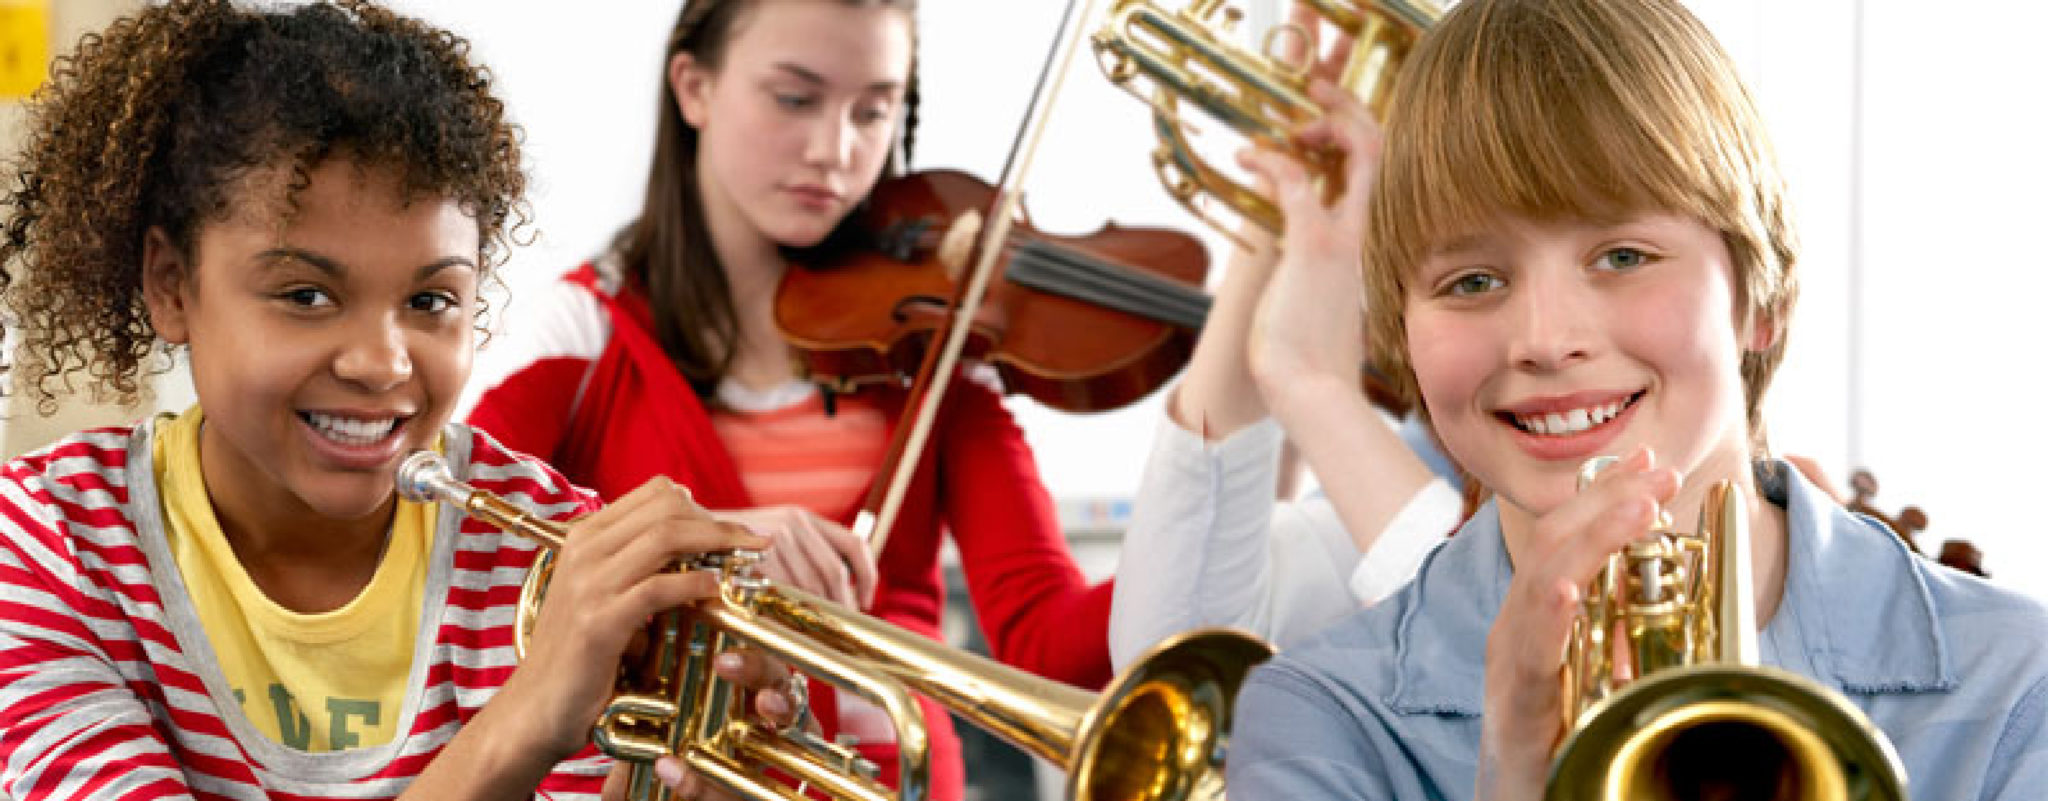 School band students playing trumpets and violins.